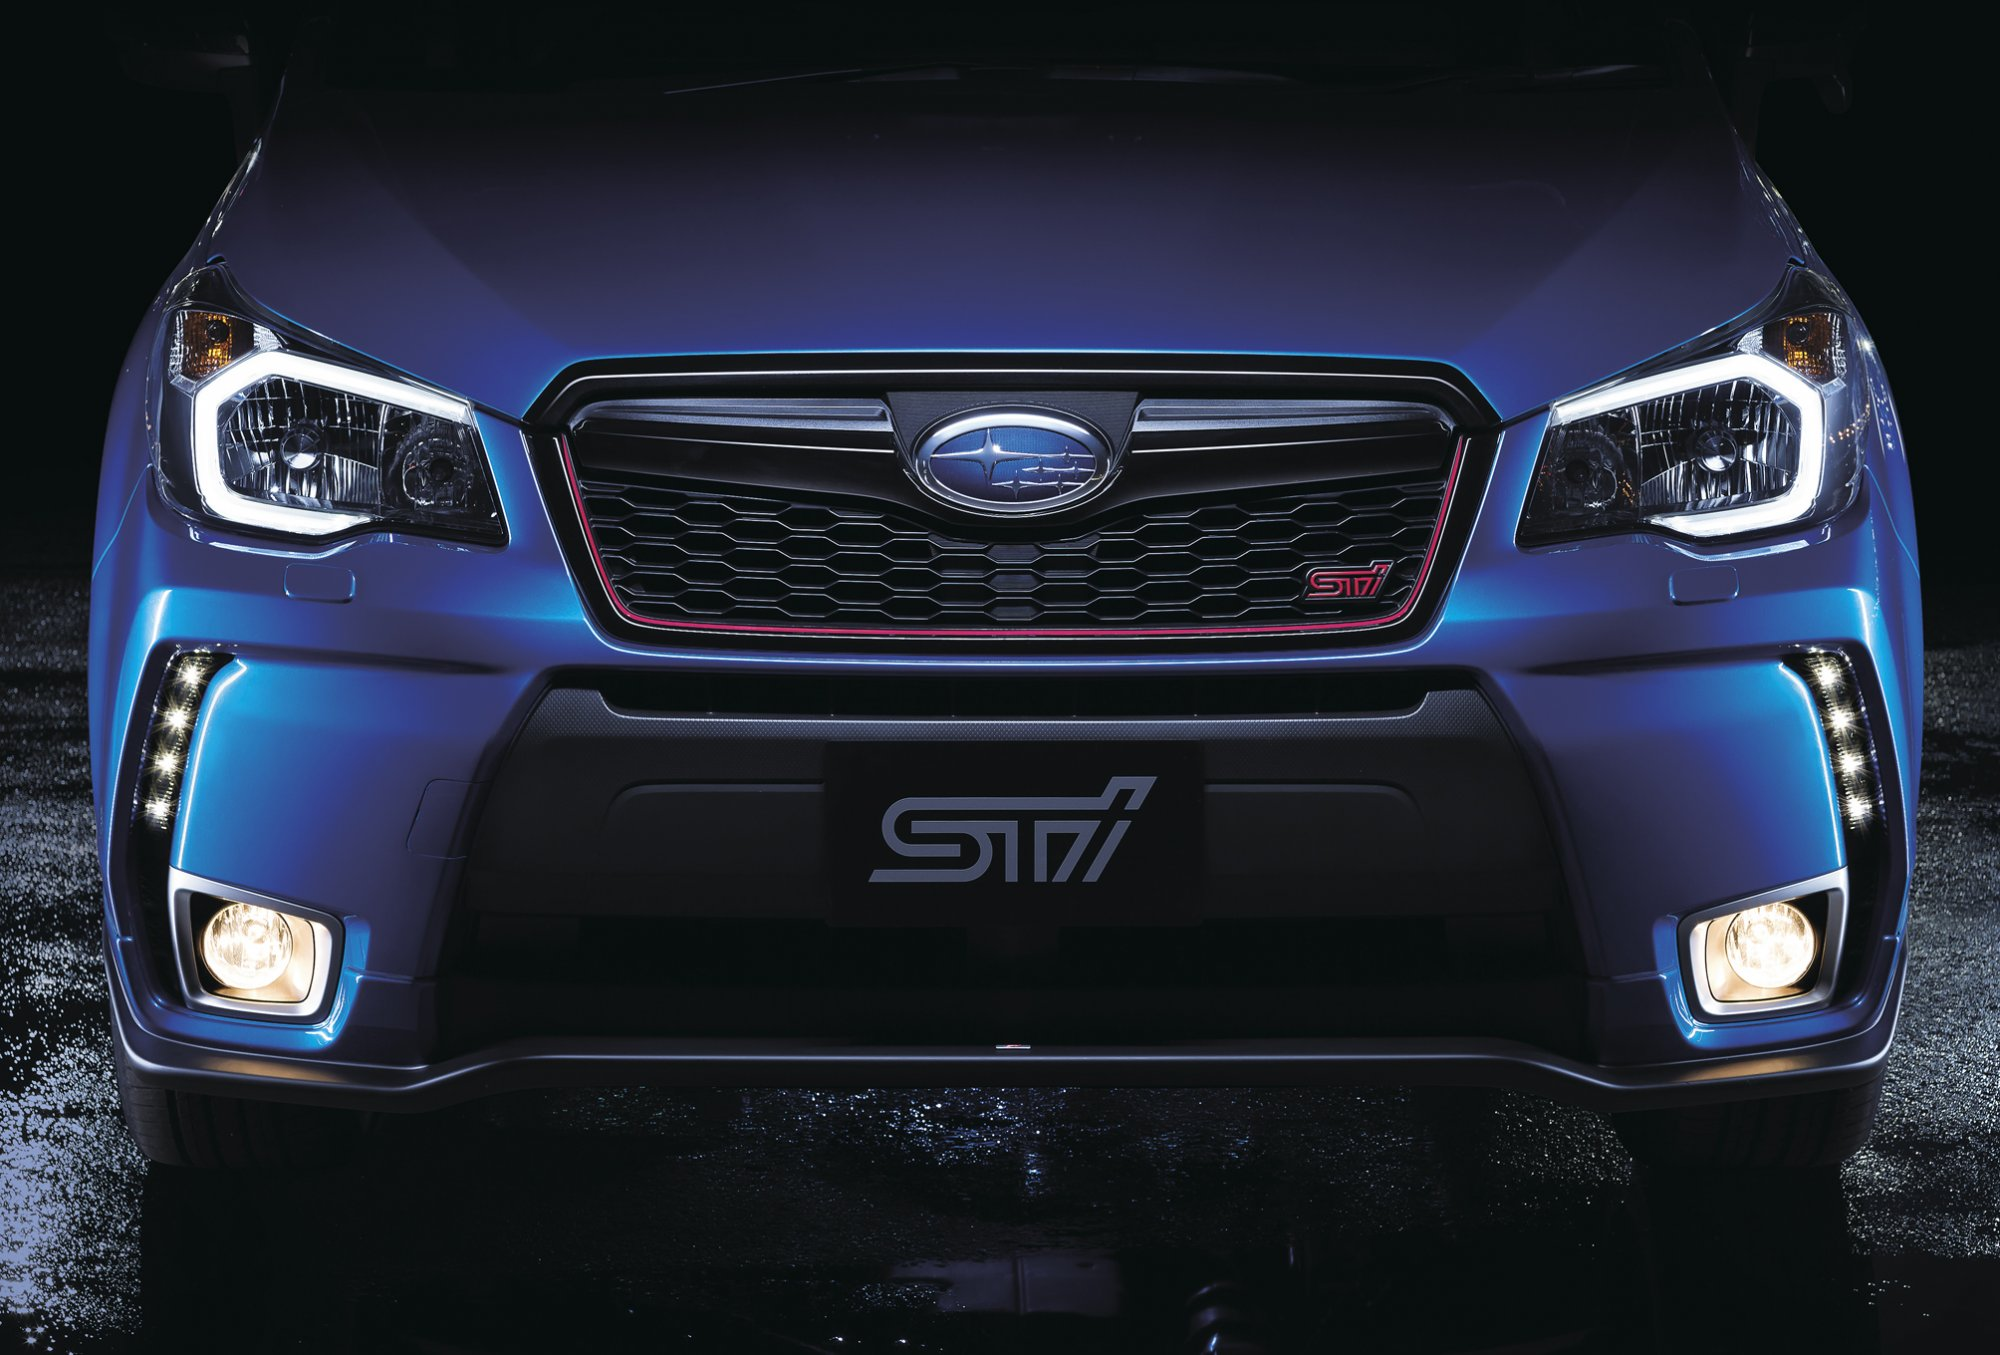 Subaru-Forester-tS-tuned-by-STI-front-grille